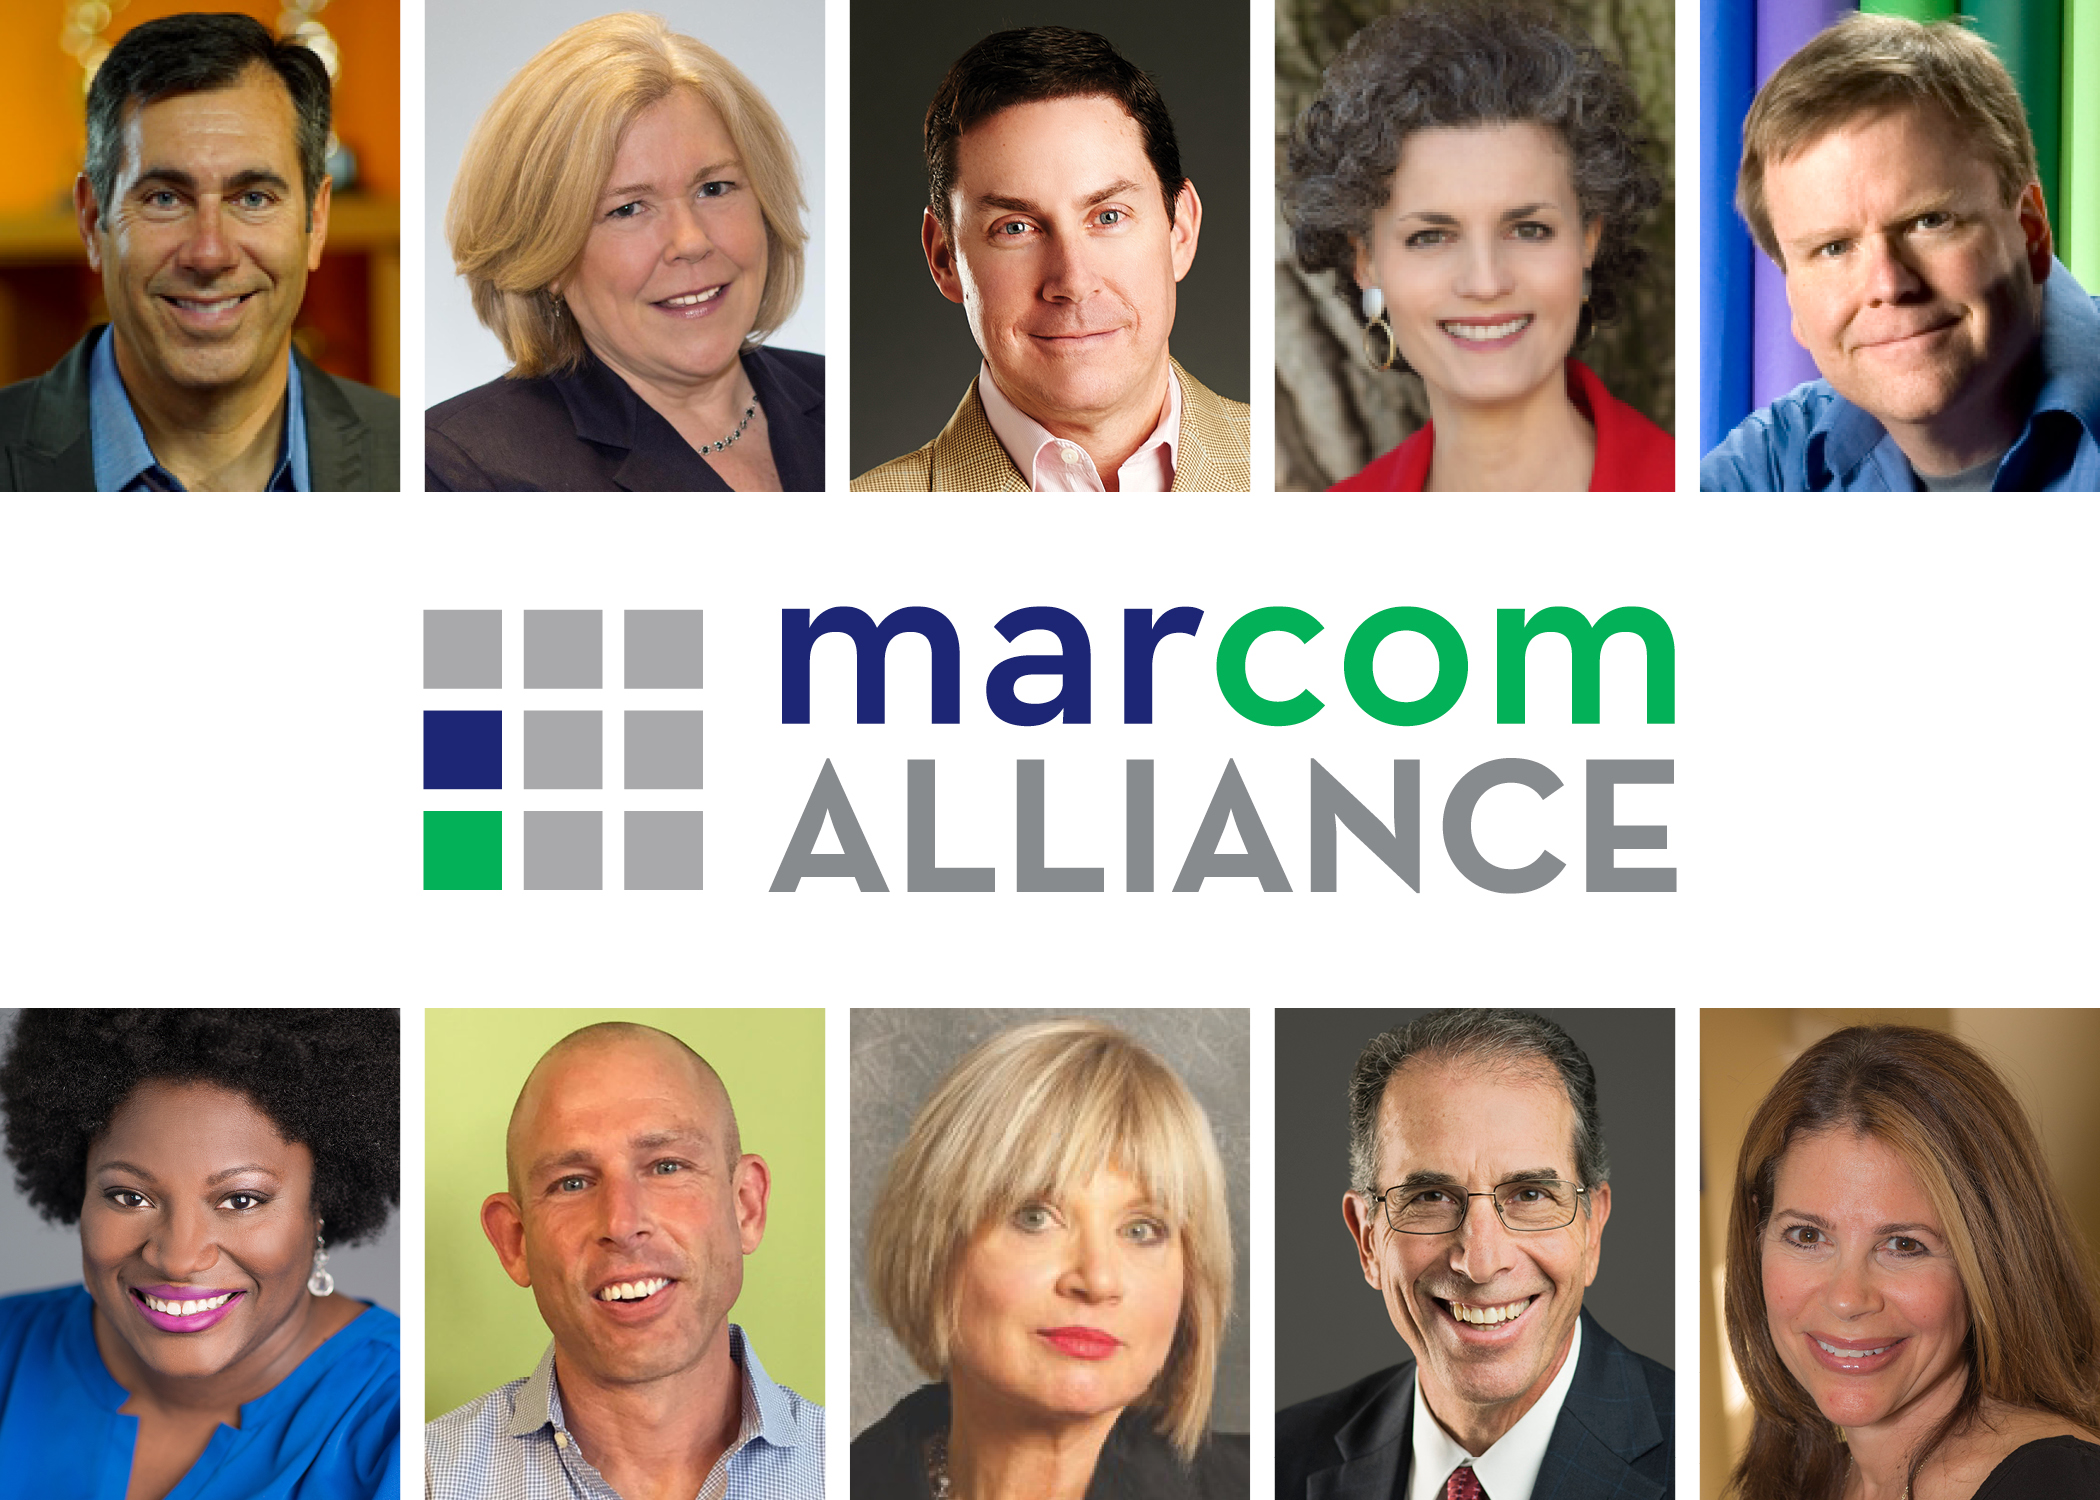 The 10 partners in the new MarCom Alliance